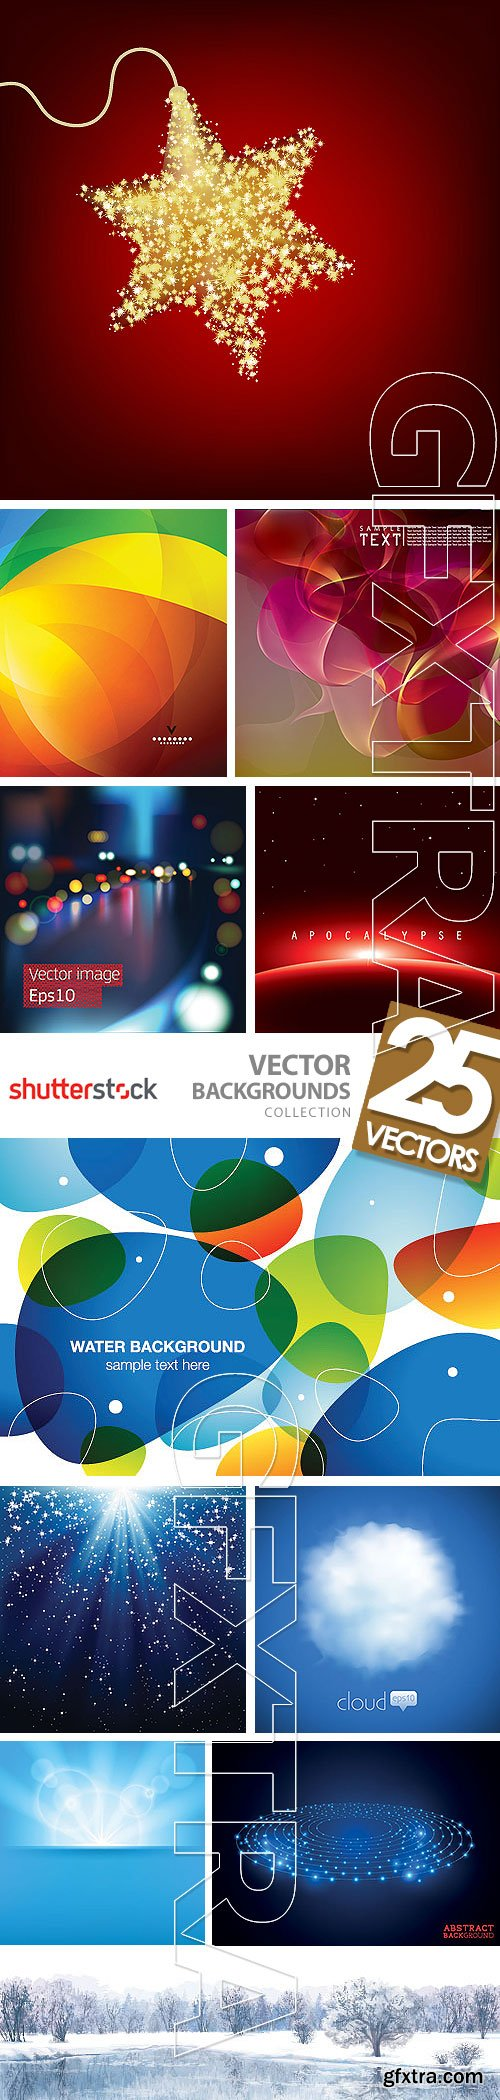 Vector Backgrounds 25xEPS